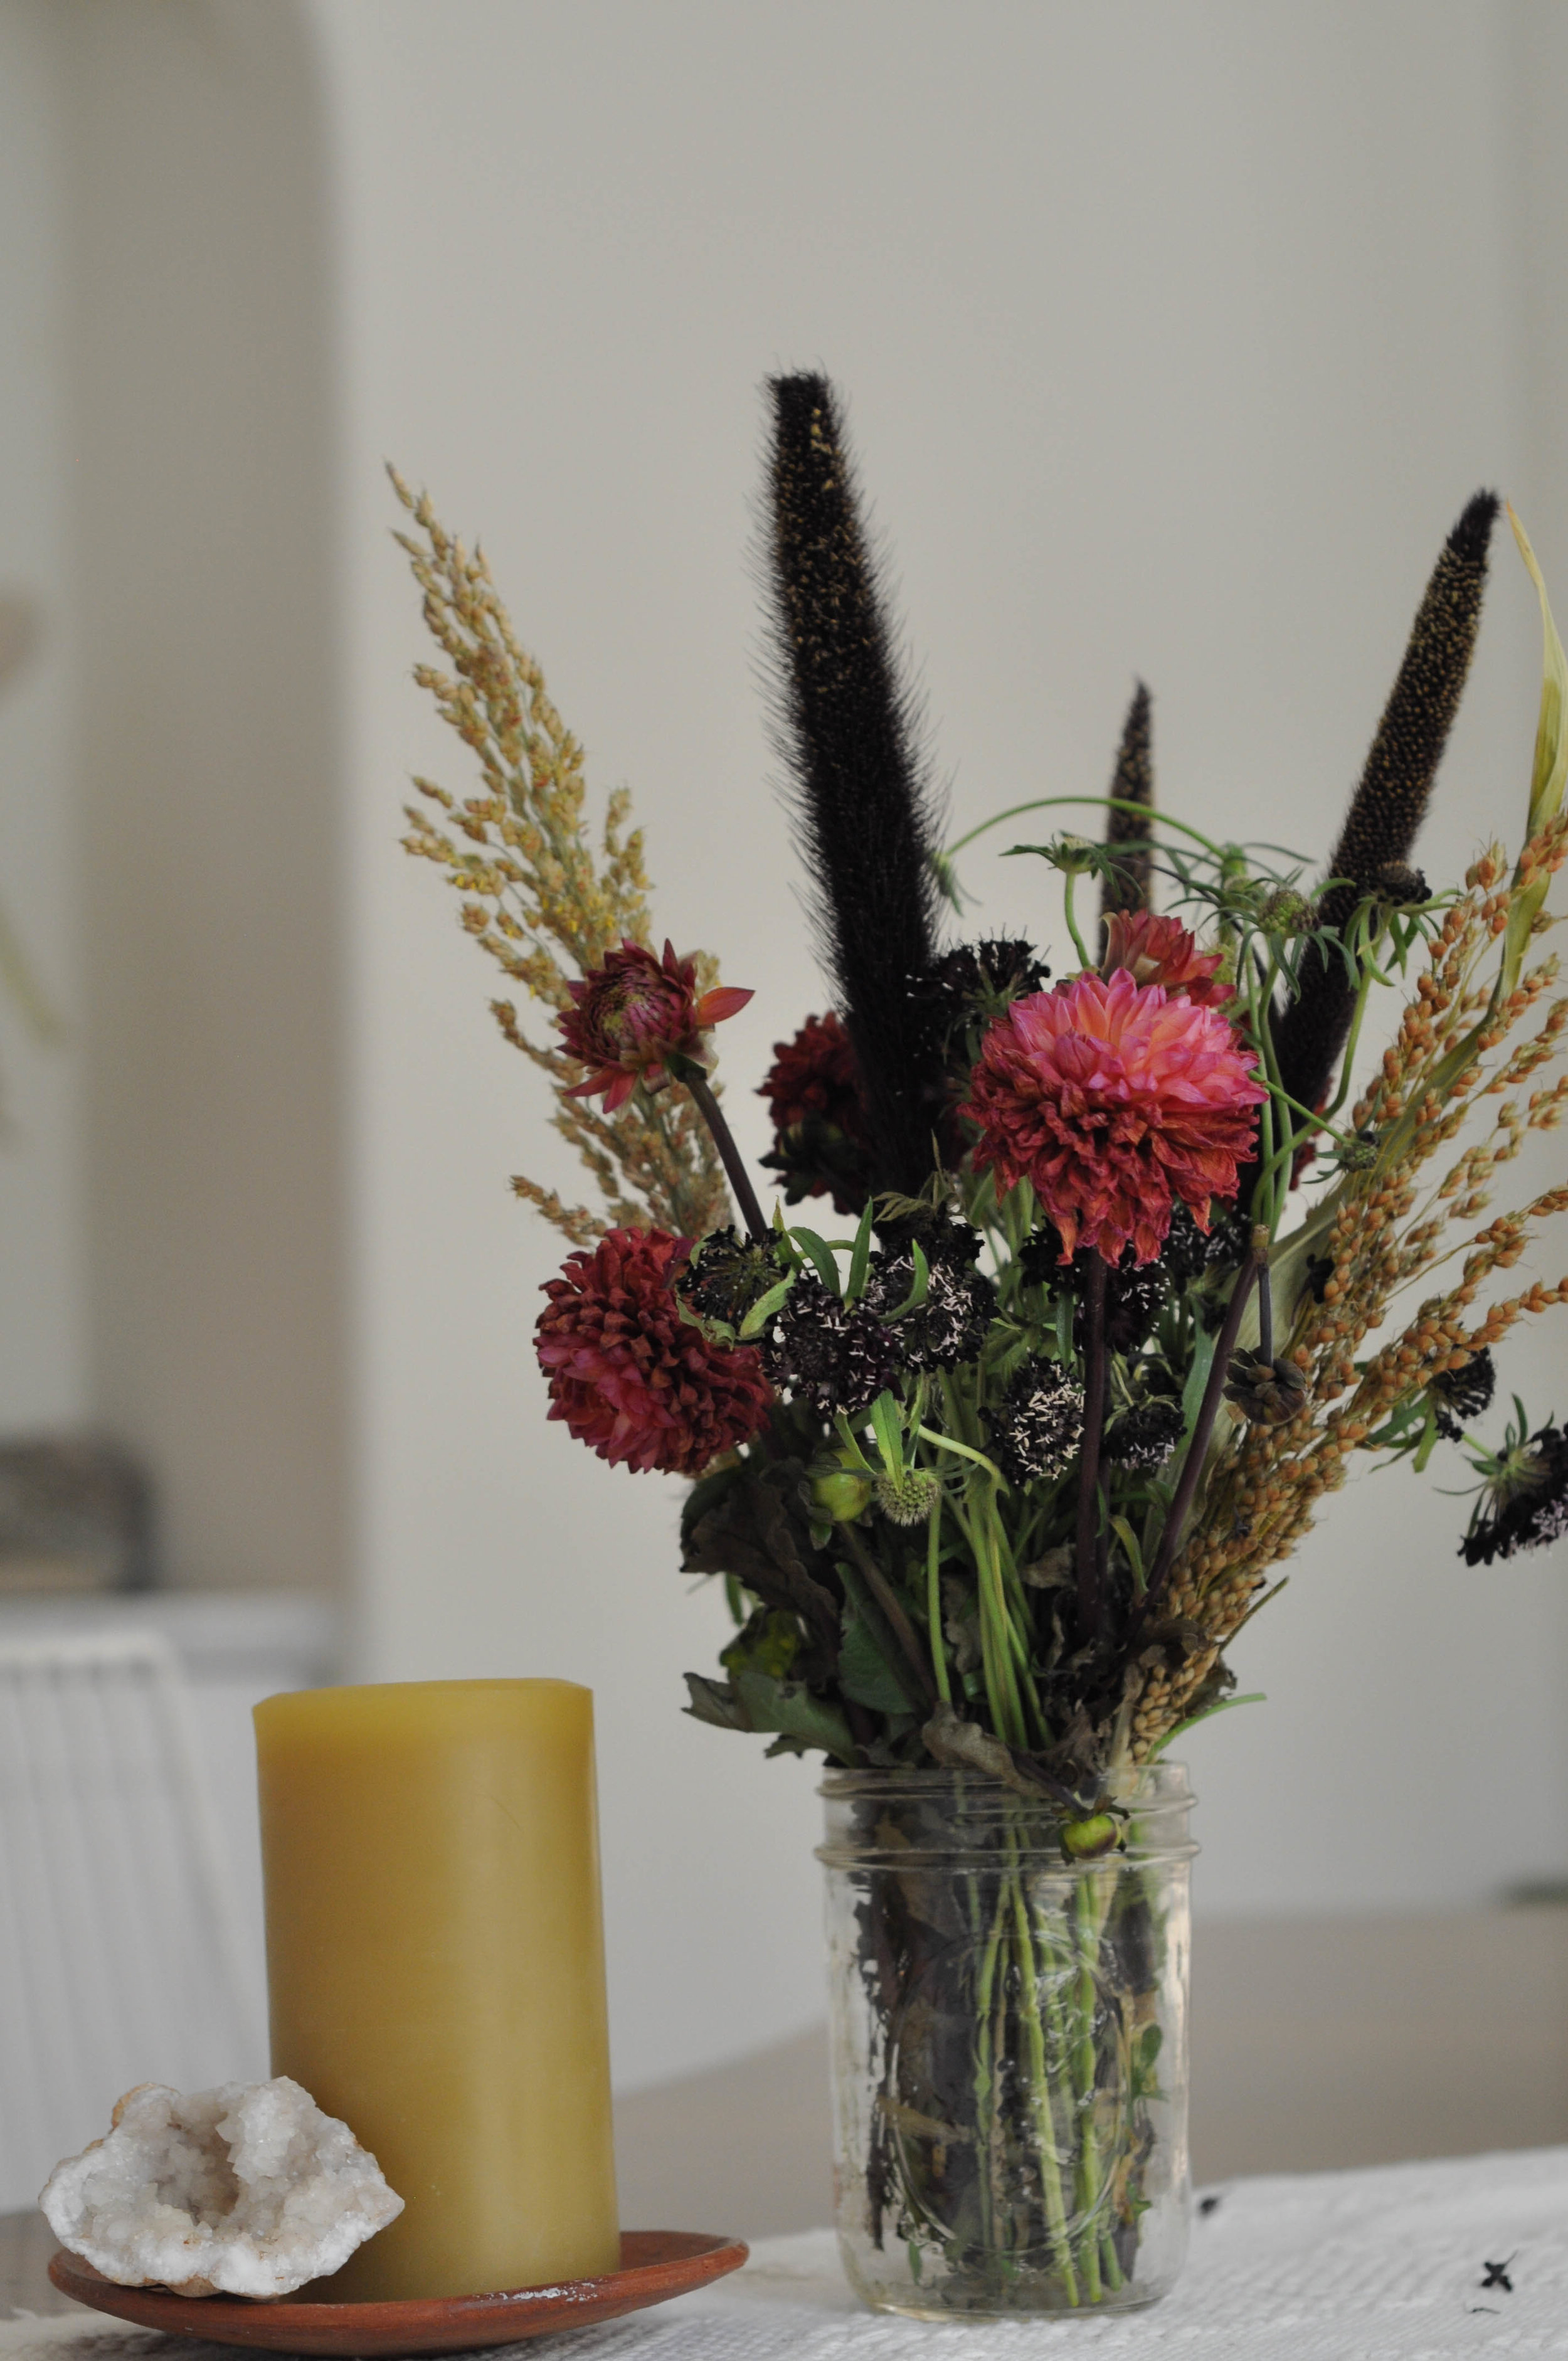 free-and-native-dried flowers (1 of 1).jpg